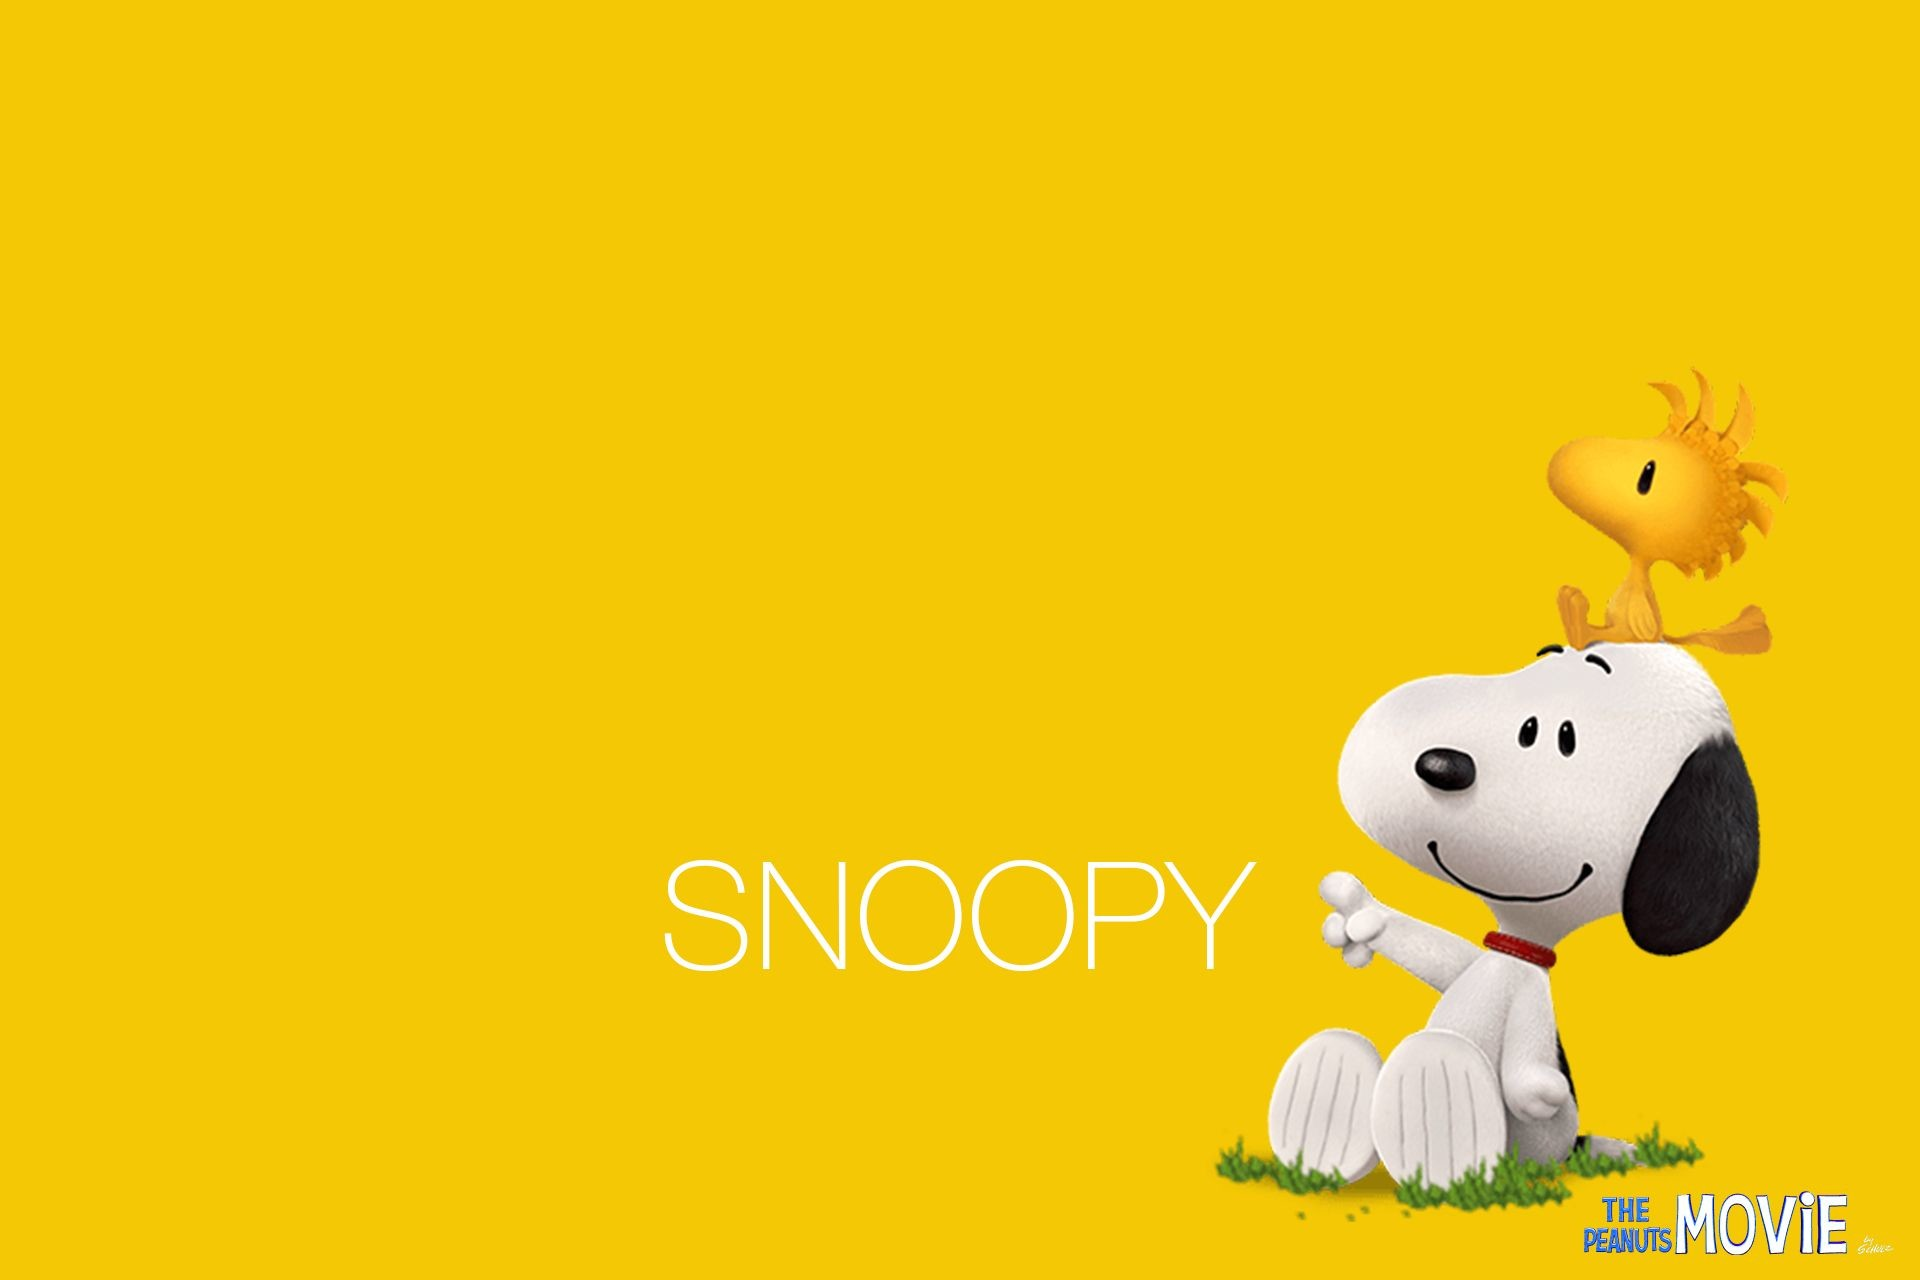 Res: 1920x1280, Snoopy HD Wallpapers Backgrounds Wallpaper 1920×1280 Imagenes De Snoopy  Wallpapers (36 Wallpapers) | Adorable Wallpapers